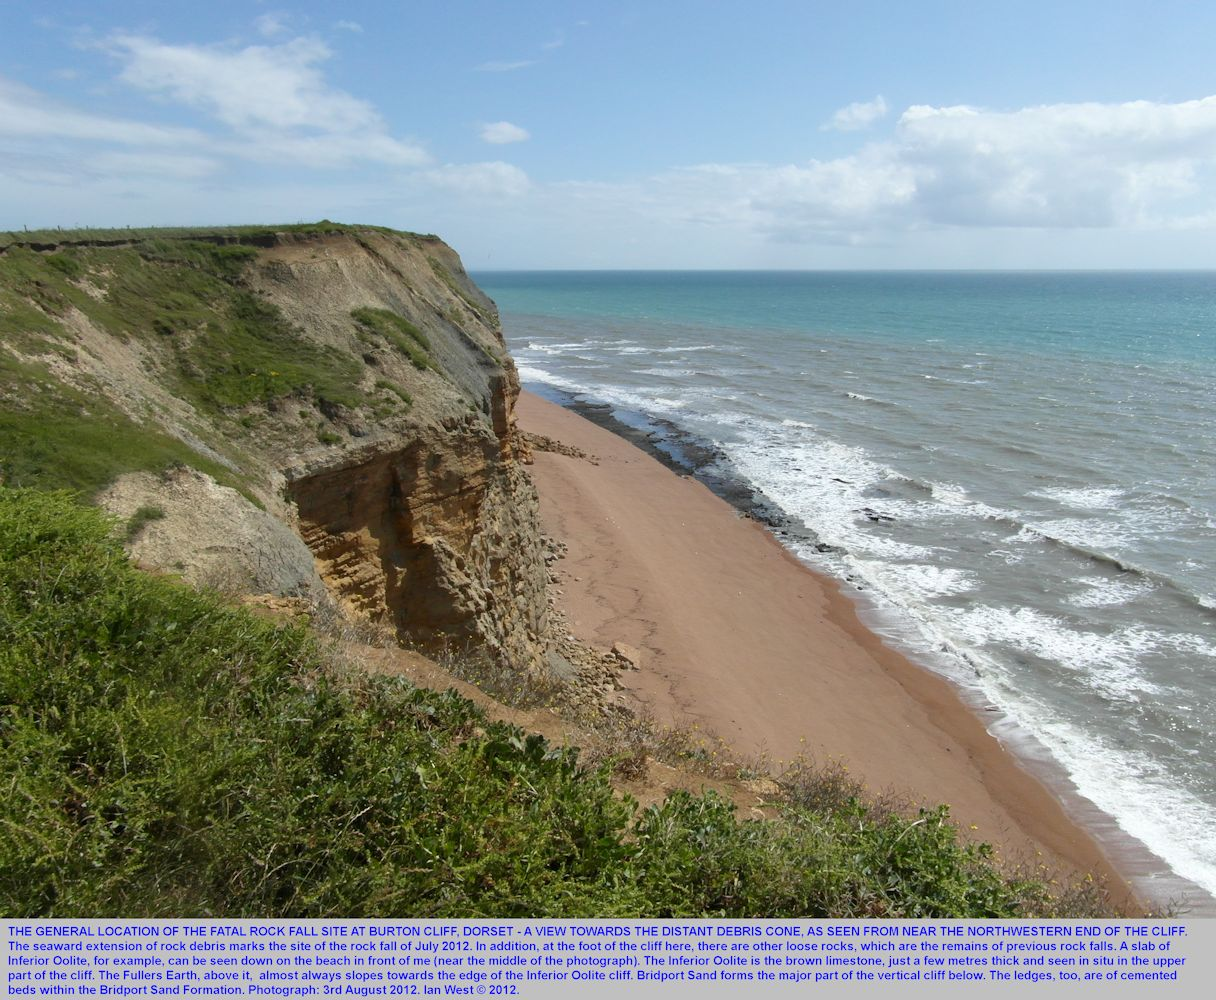 A distant view of part of the debris cone of the Burton Cliff rock fall of 24th July 2012, Burton Bradstock, Dorset